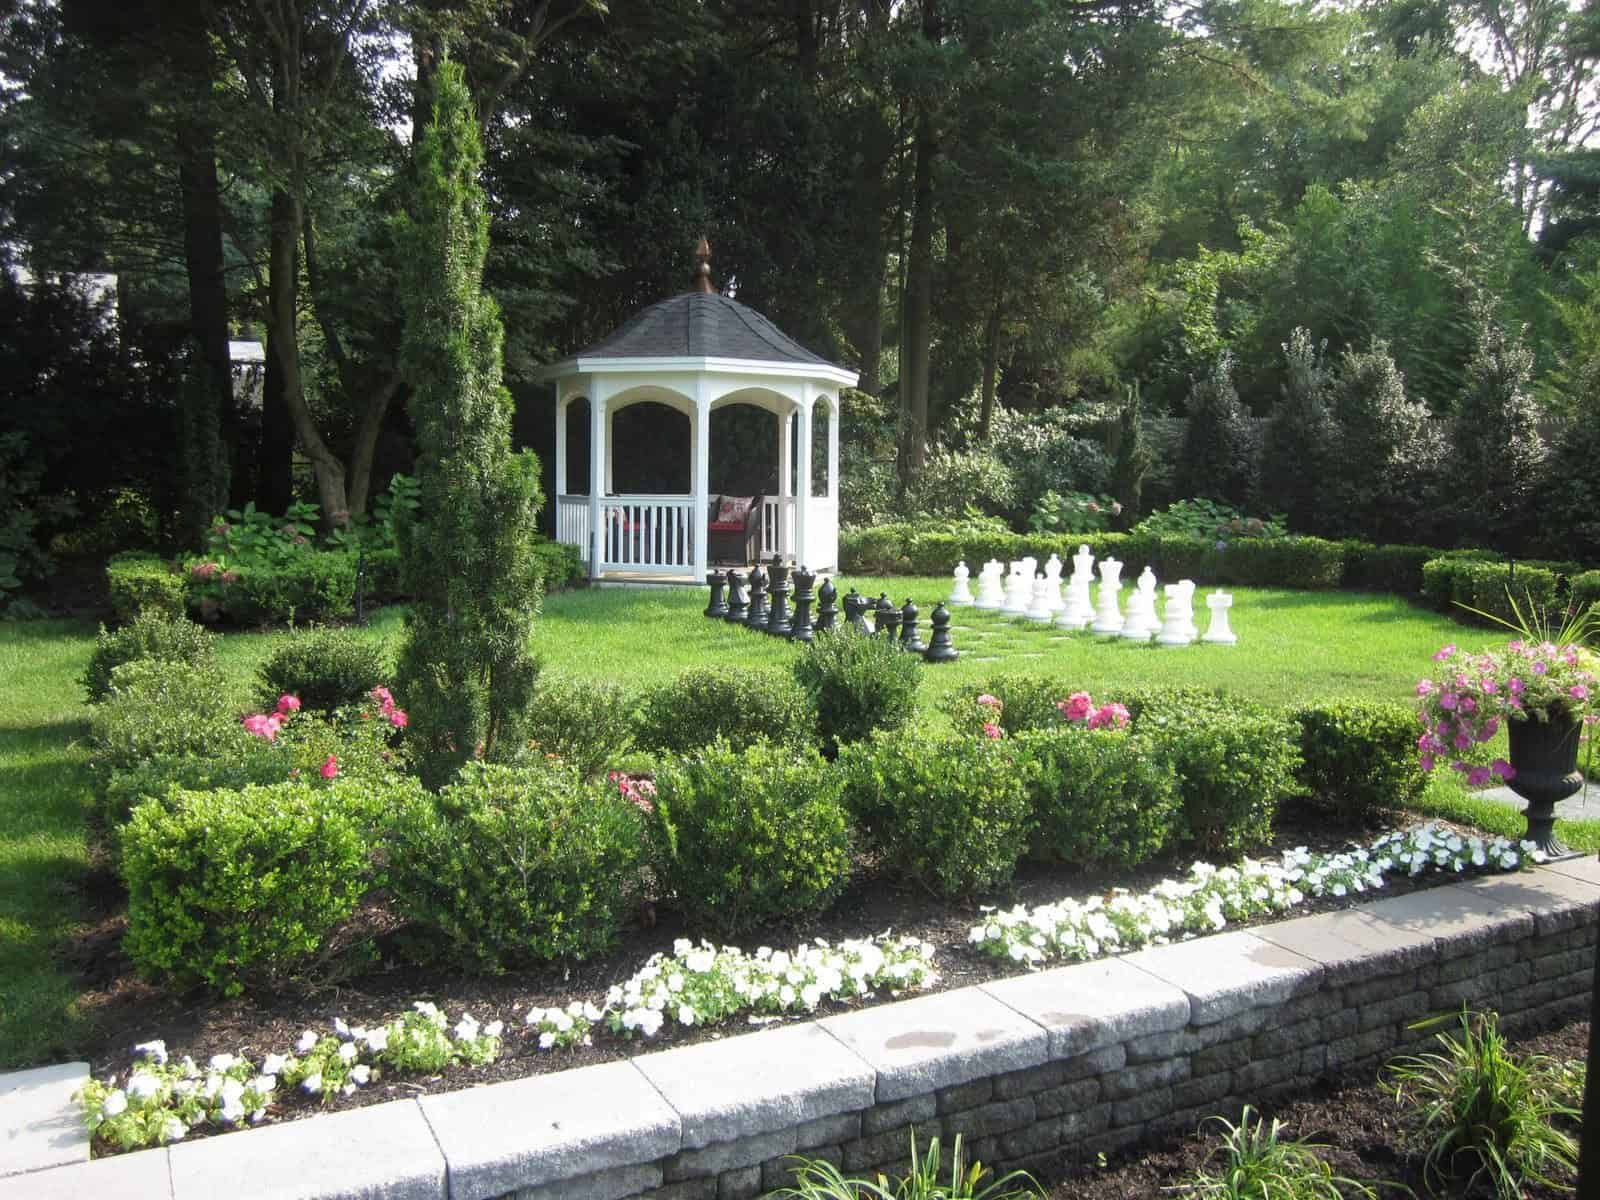 10' x 10' Amish Gazebo with Bell Roof and Cupola - Glen Cove, Long Island NY